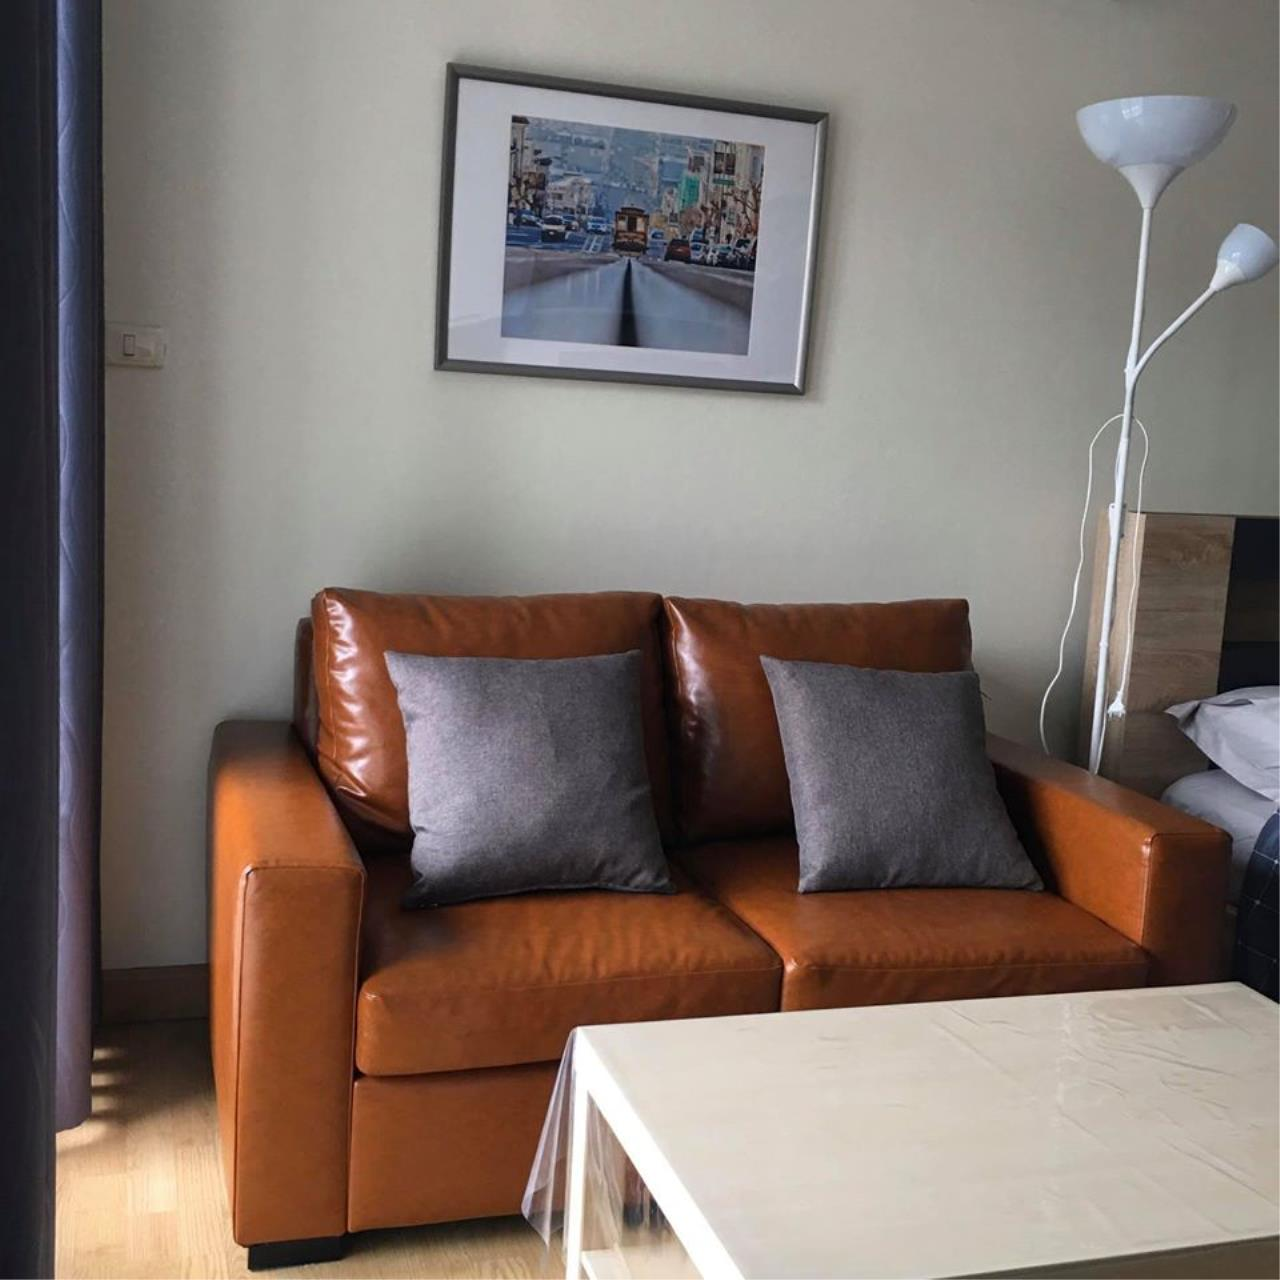 Agent Thawanrat Agency's Condo for rental THE LINK ADVANCE SUKHUMVIT 50 Near BTS. On Nut 1 bedroom,1 bathroom. size 31.5 sqm.Floor 2 nd. fully furnished Ready to move in 10